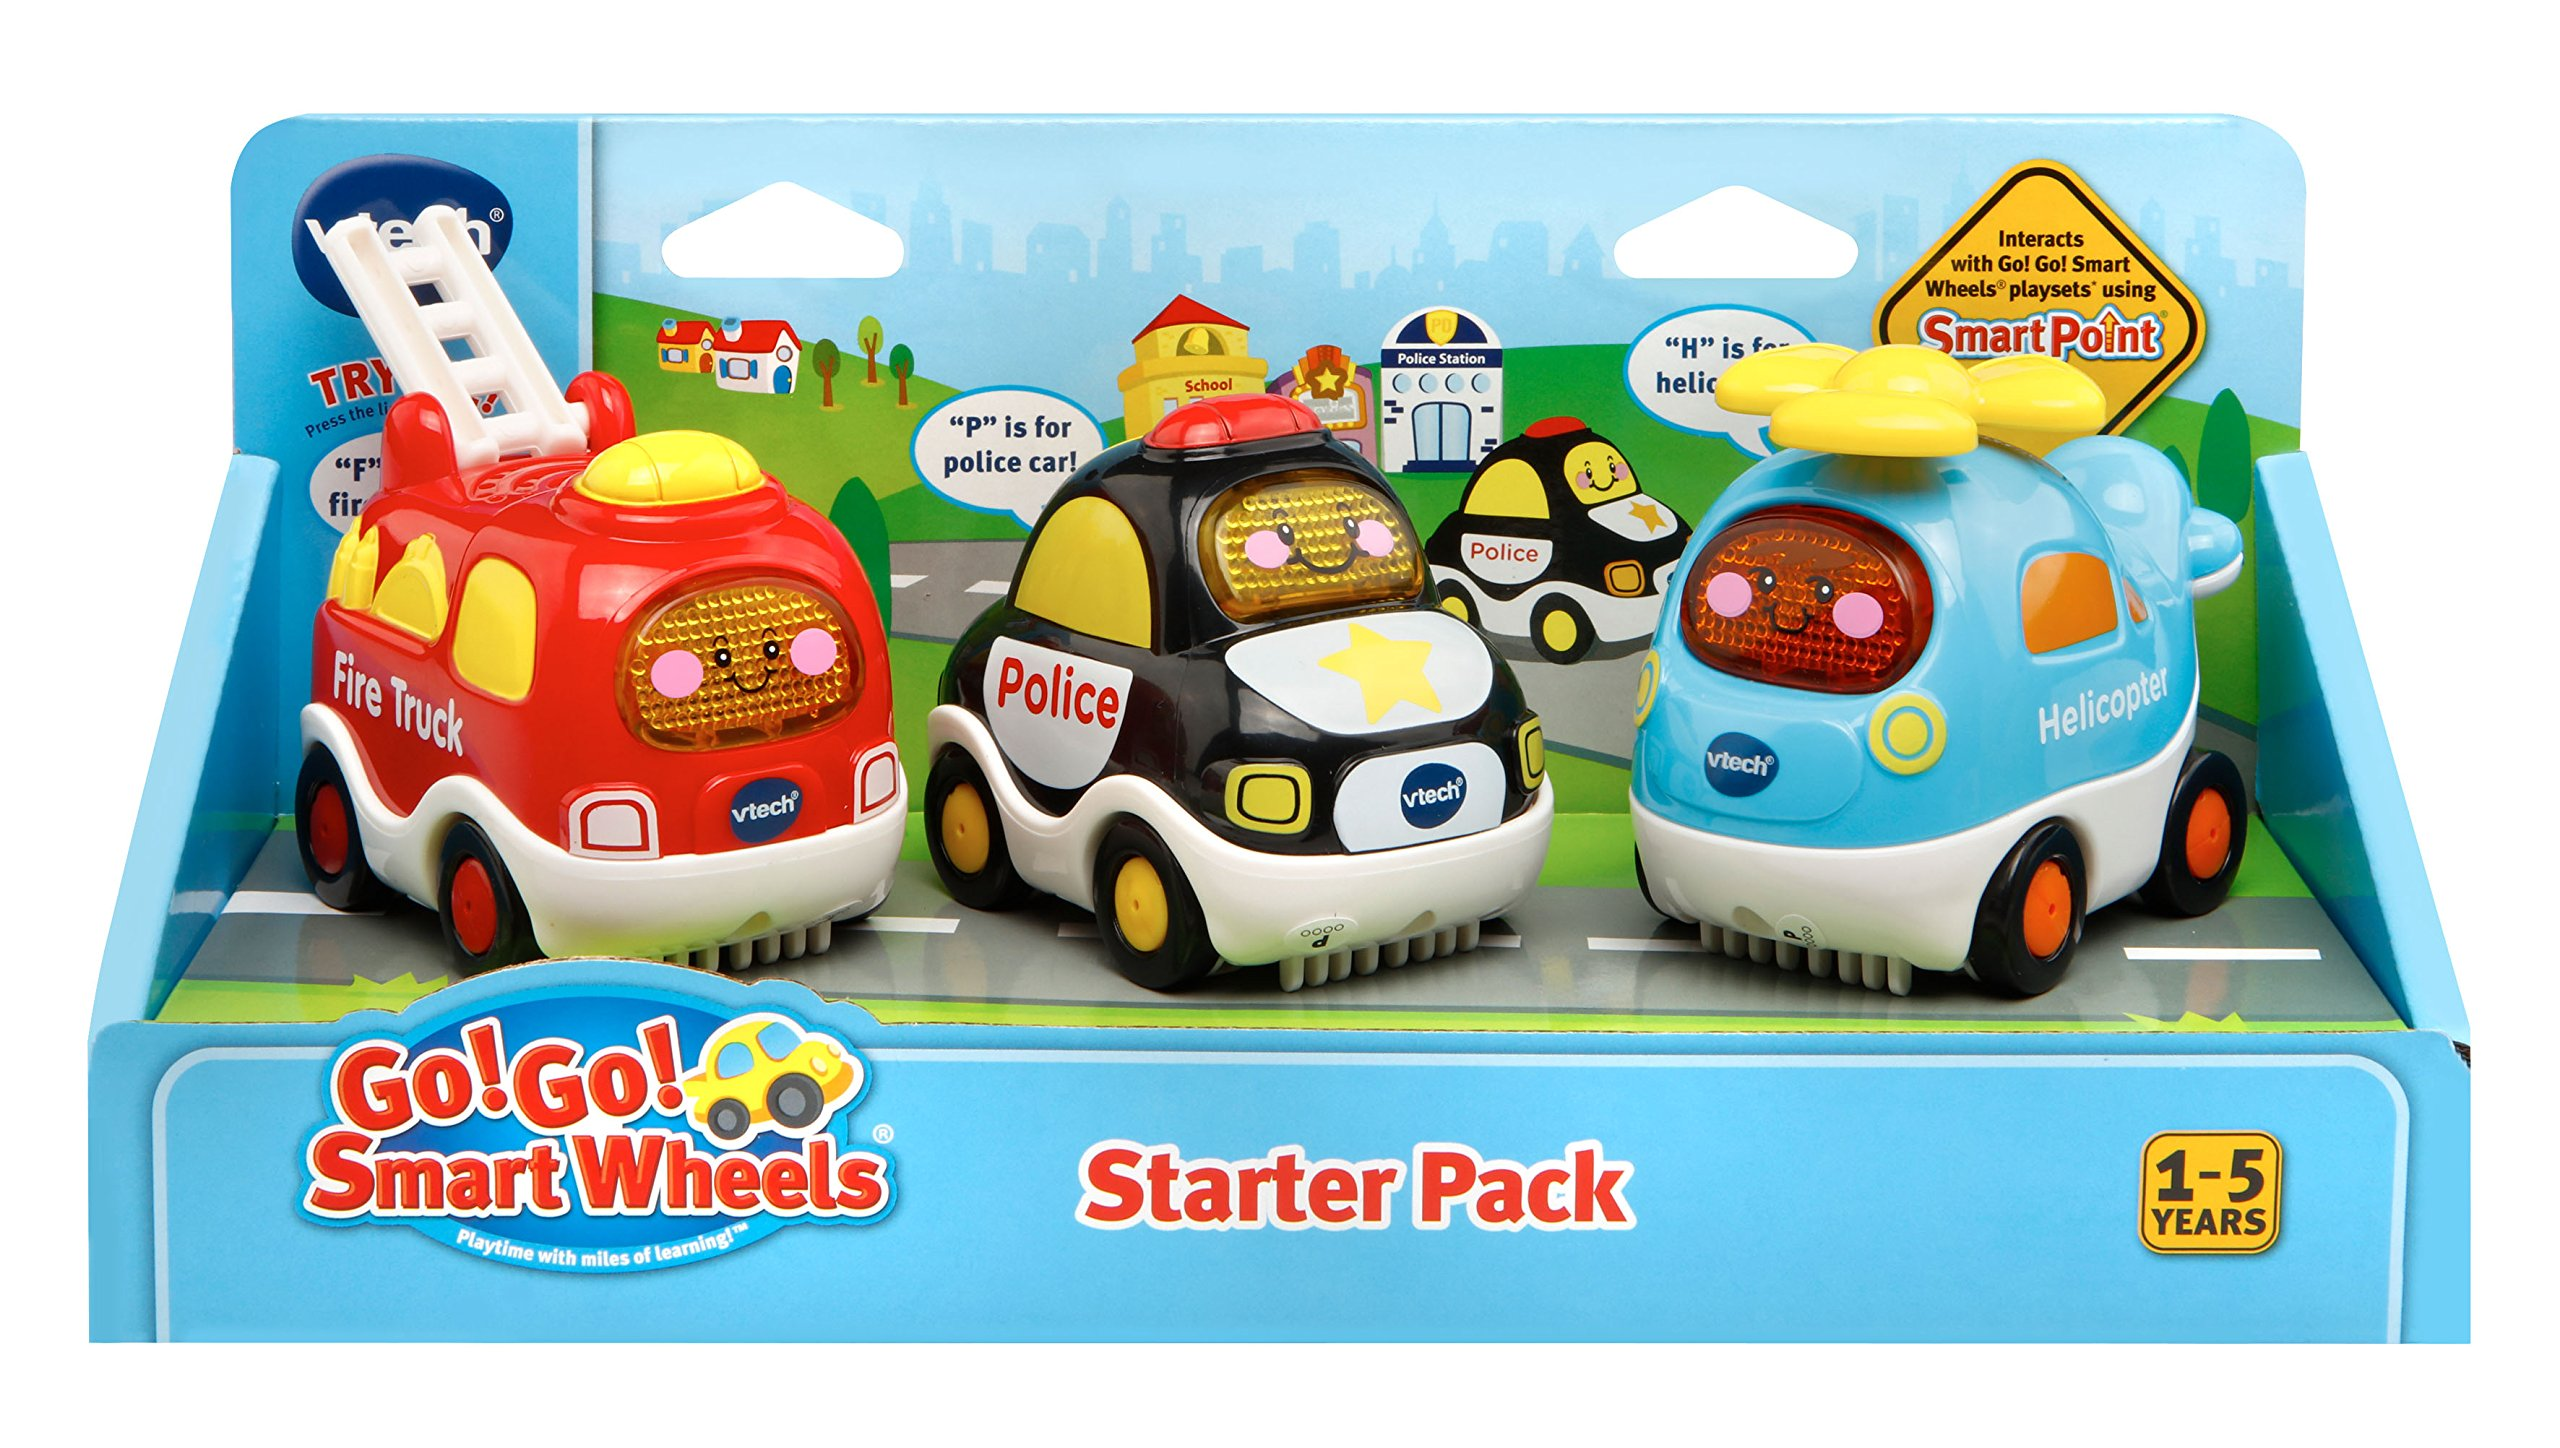 VTech Go! Go! Smart Wheels Starter Pack, Set of 3 by VTech (Image #2)